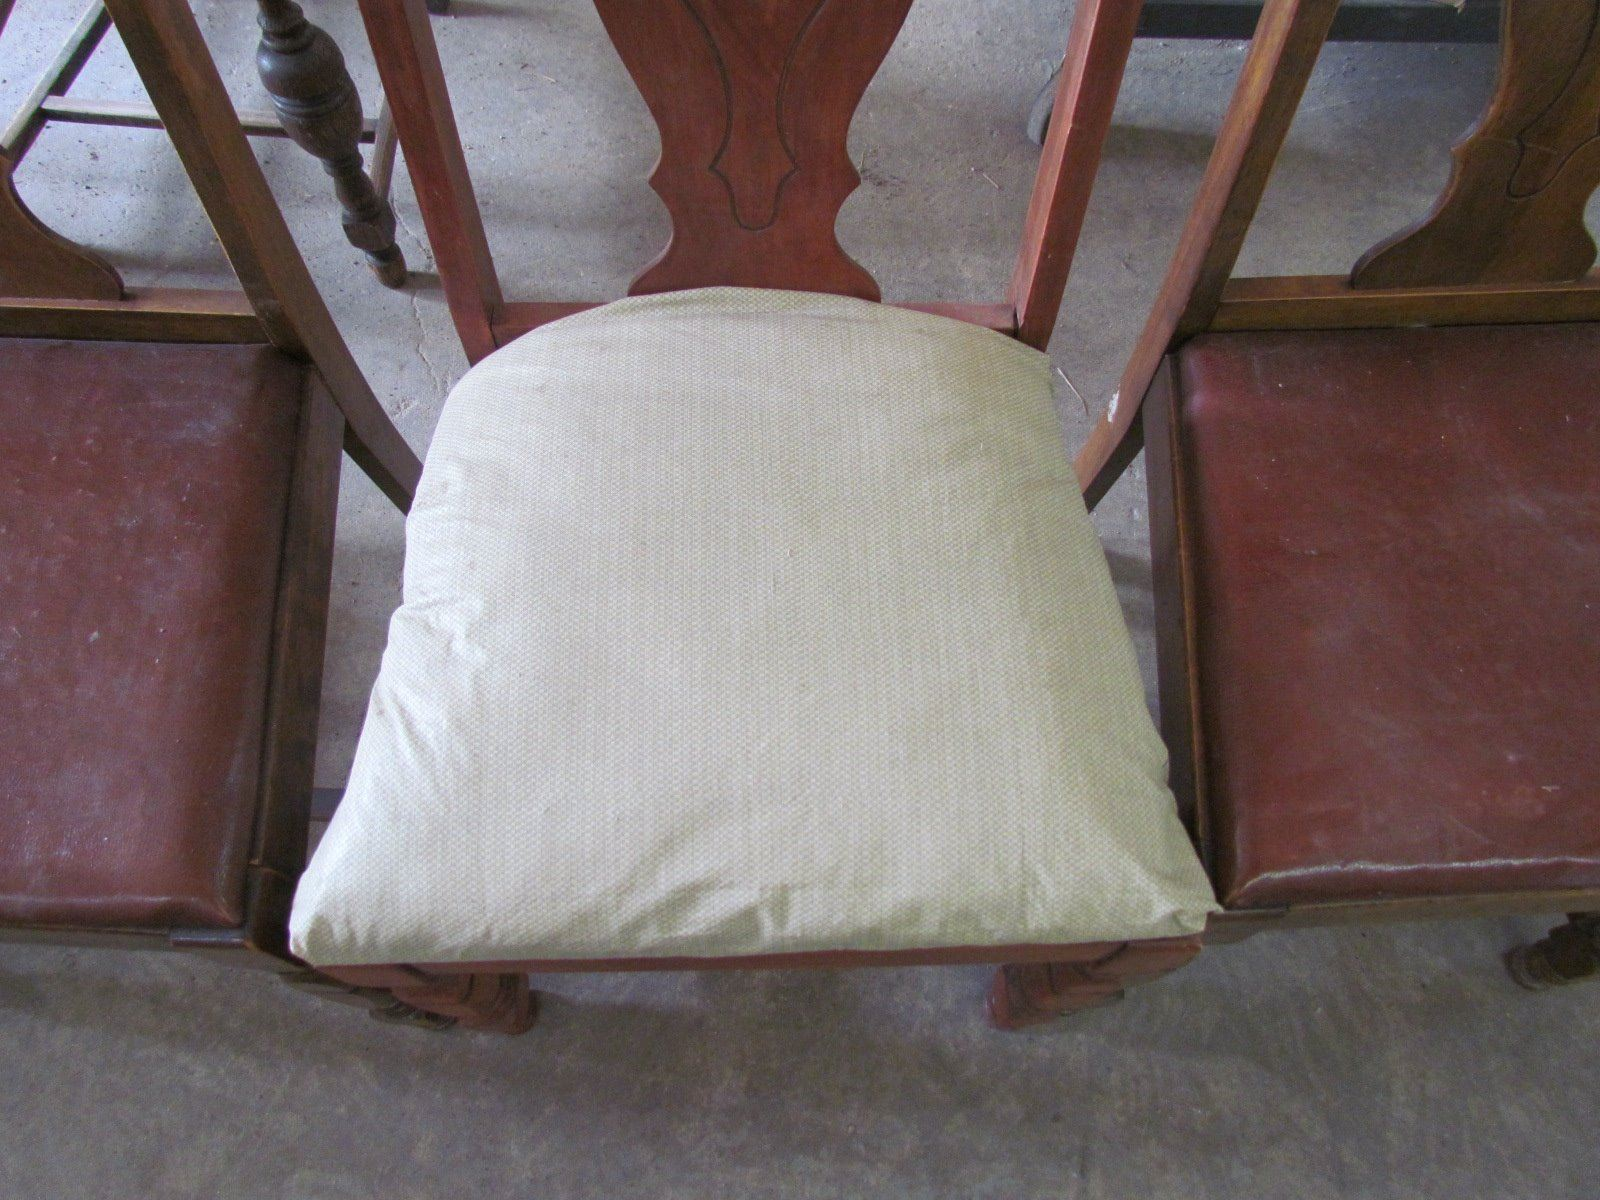 ... Image 4 : 3 Antique Chairs   1 Chair Cushion Replaced